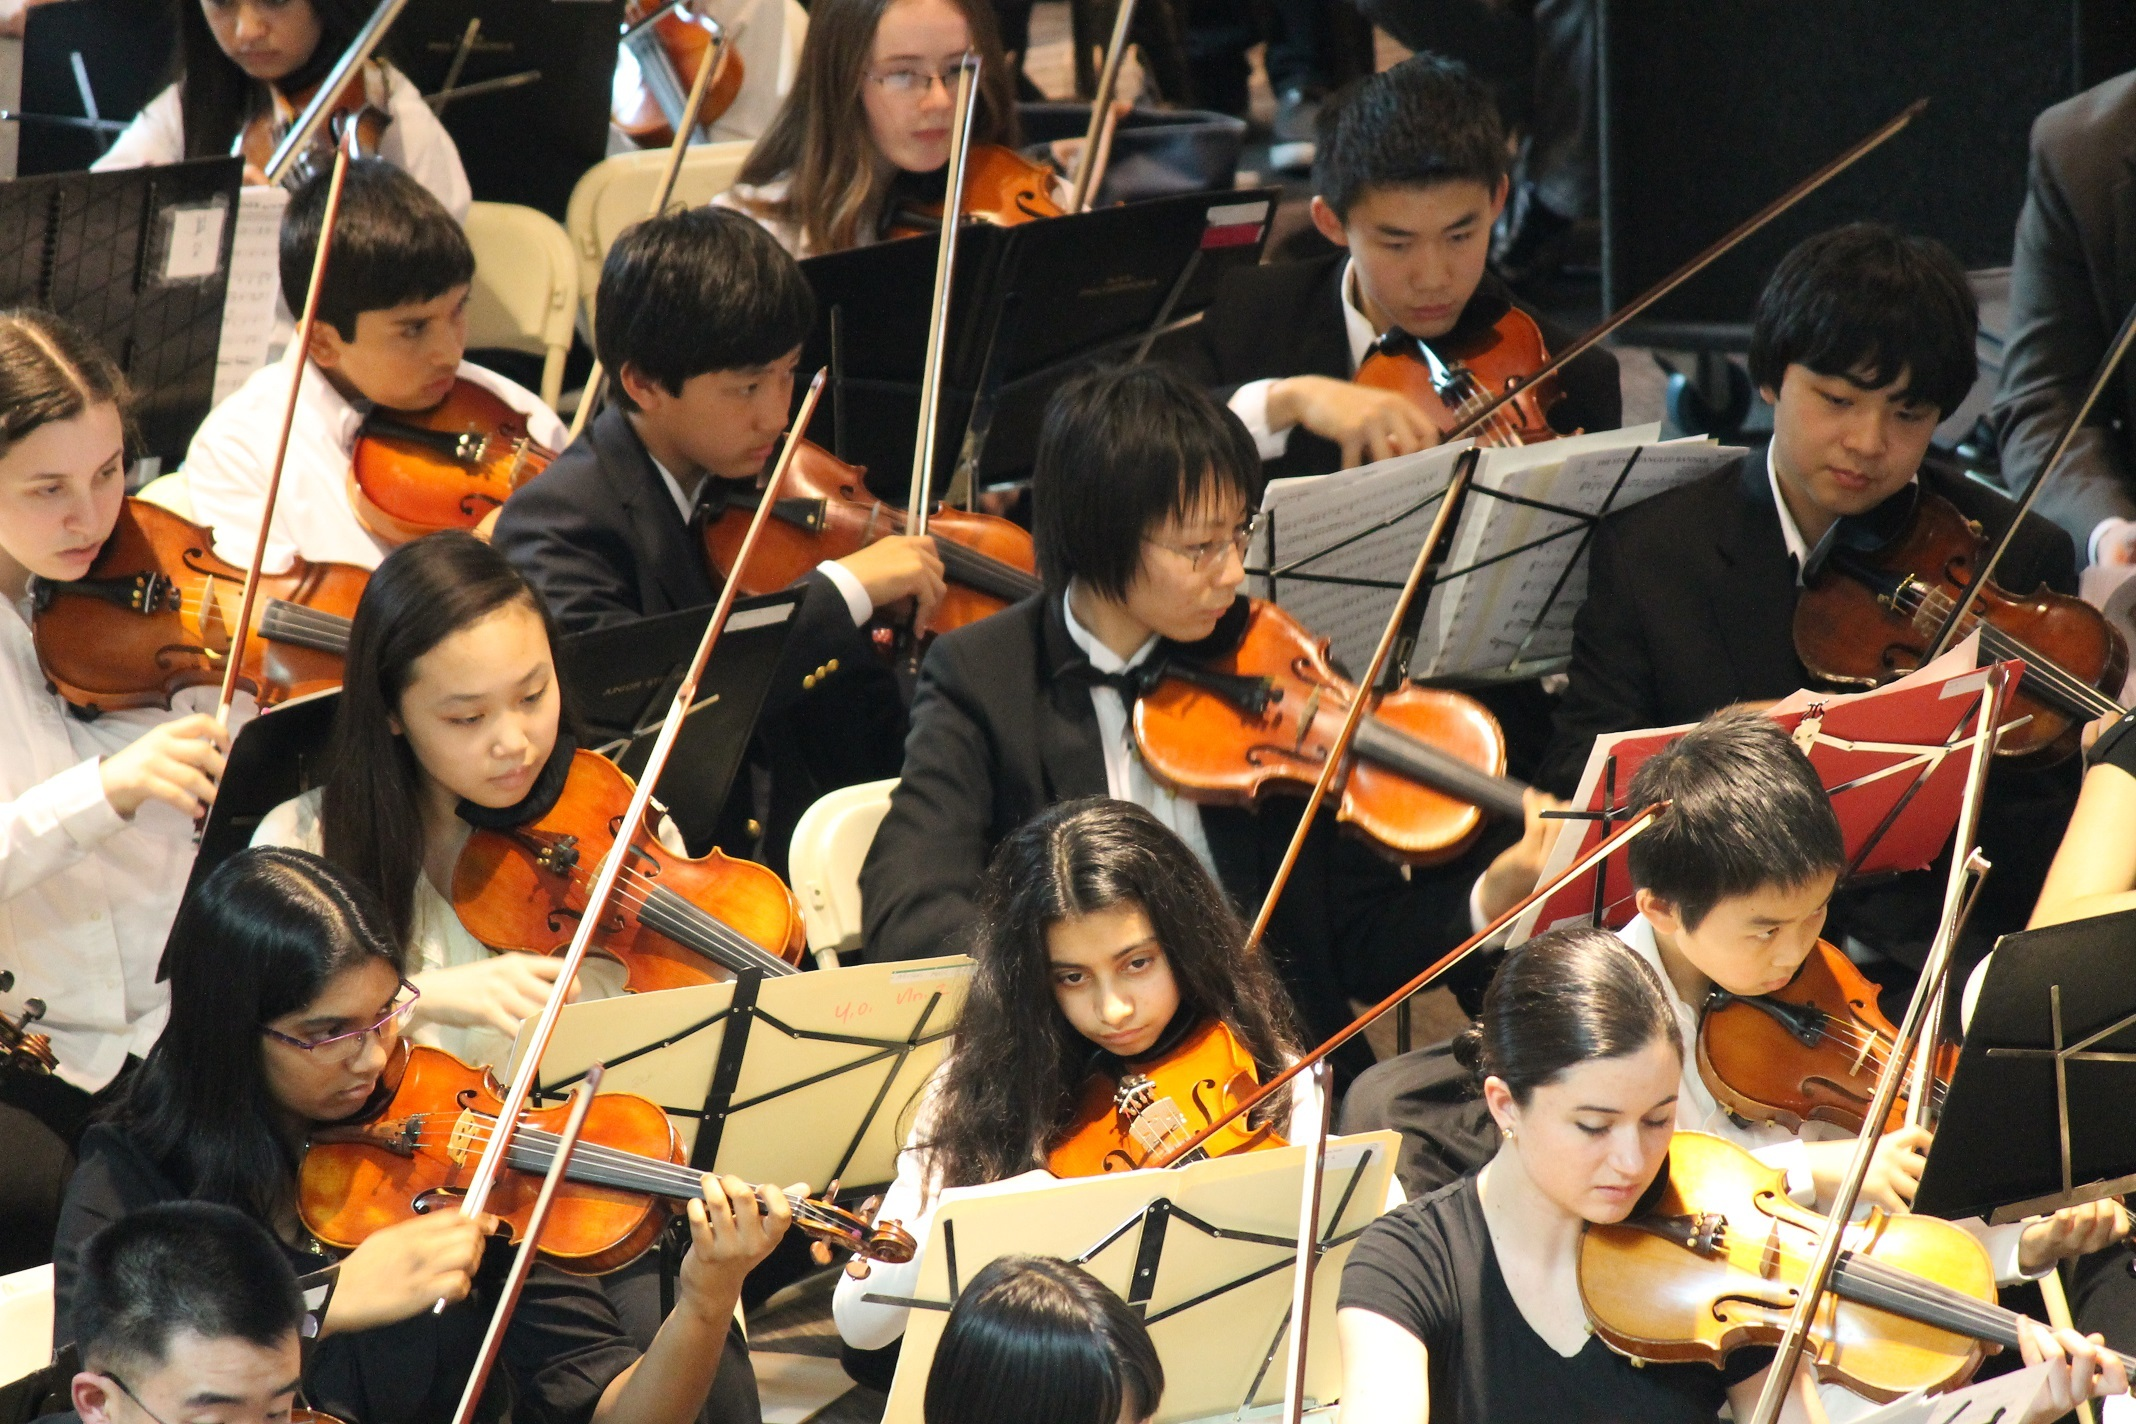 55cd9ad04f6d482a86a5_NJYS_Violin_Section.jpg